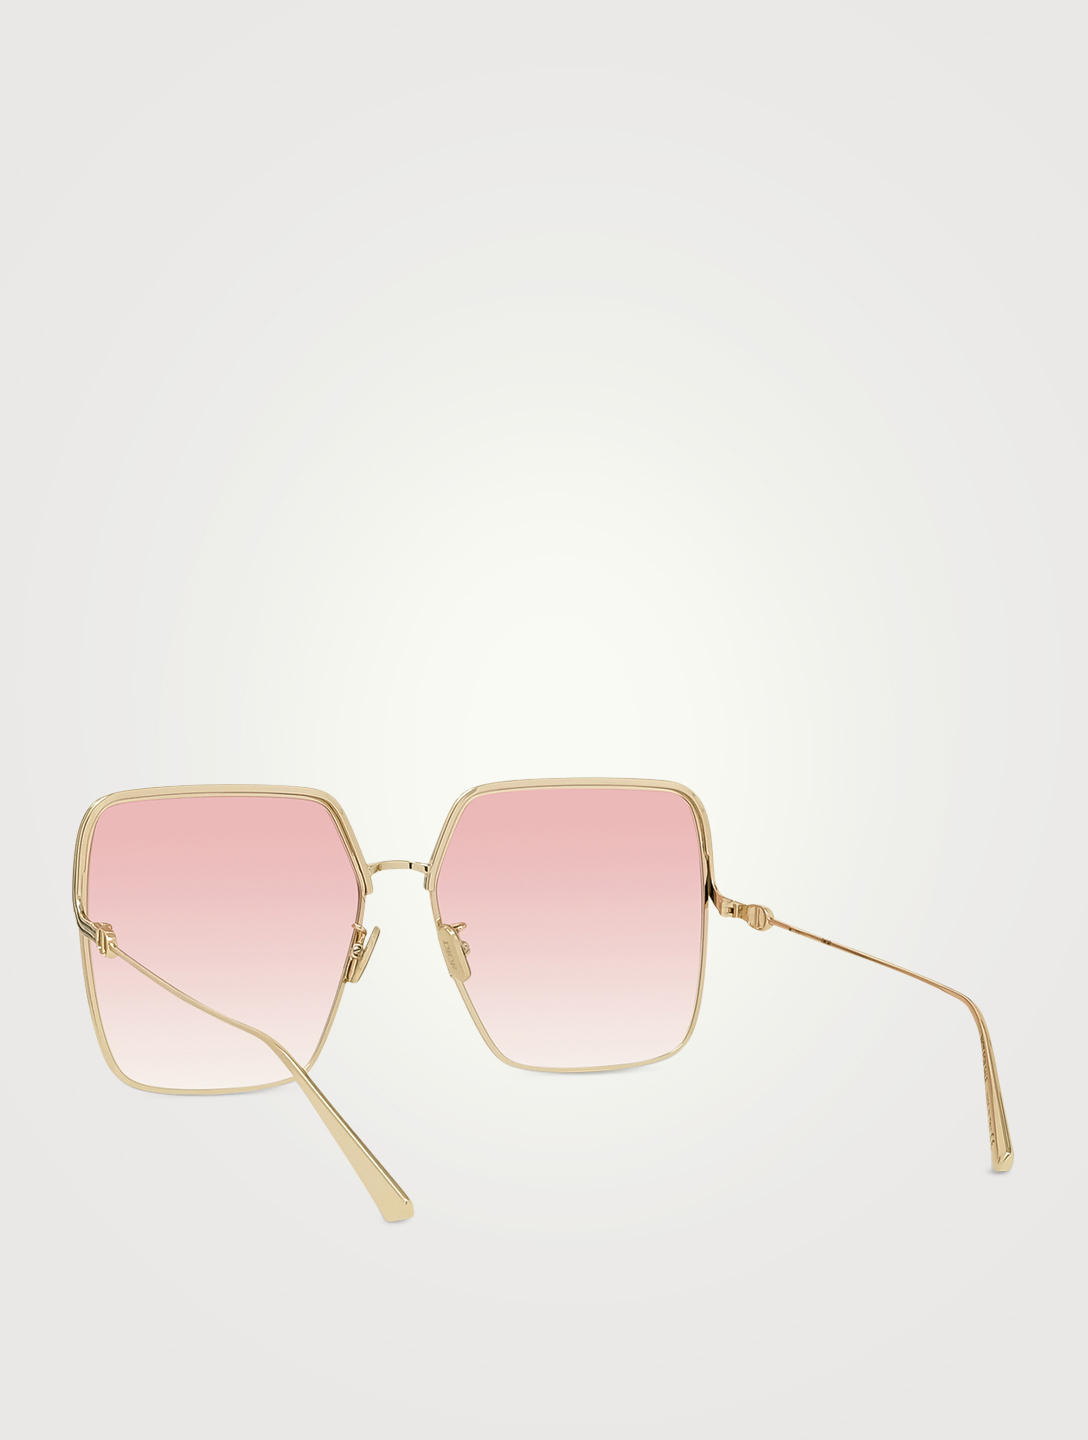 DIOR EverDior SU Square Sunglasses Women's Metallic